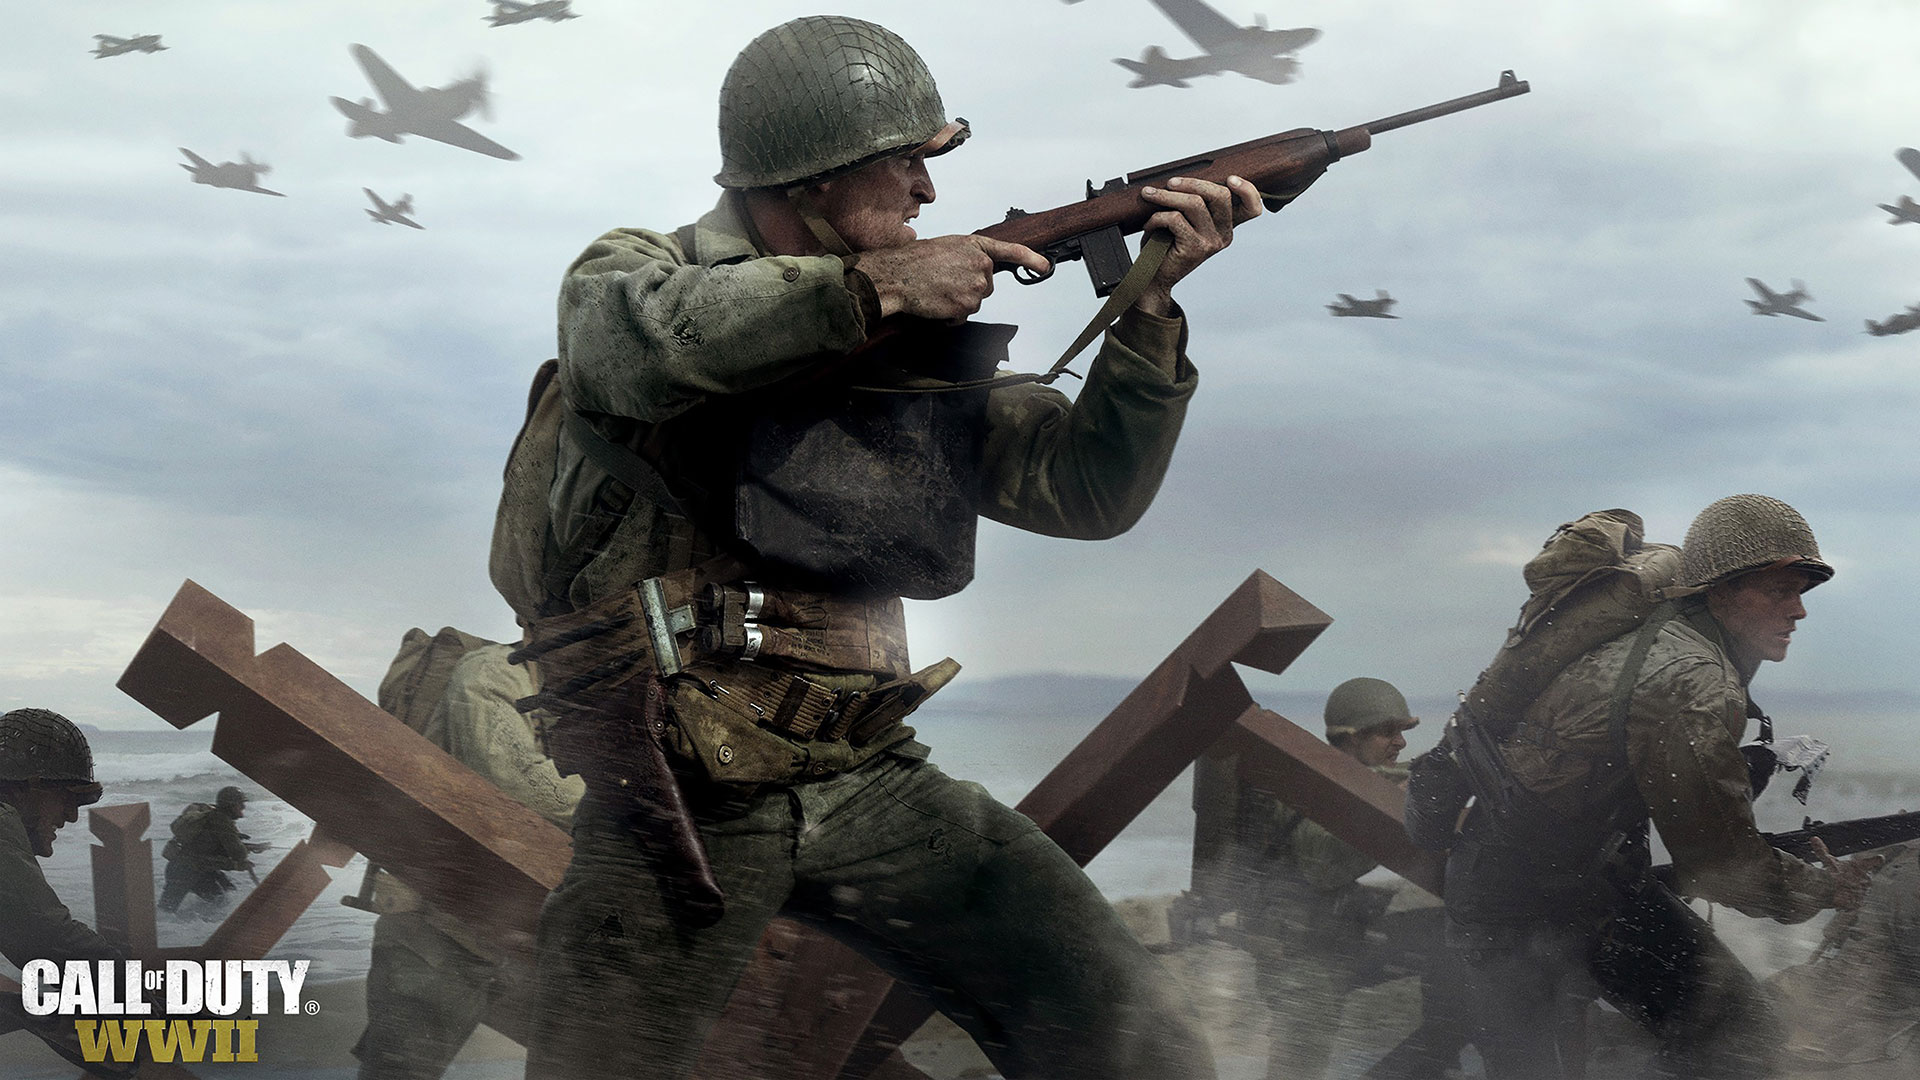 How To Avoid Rank Reset Bug In Call of Duty WWII